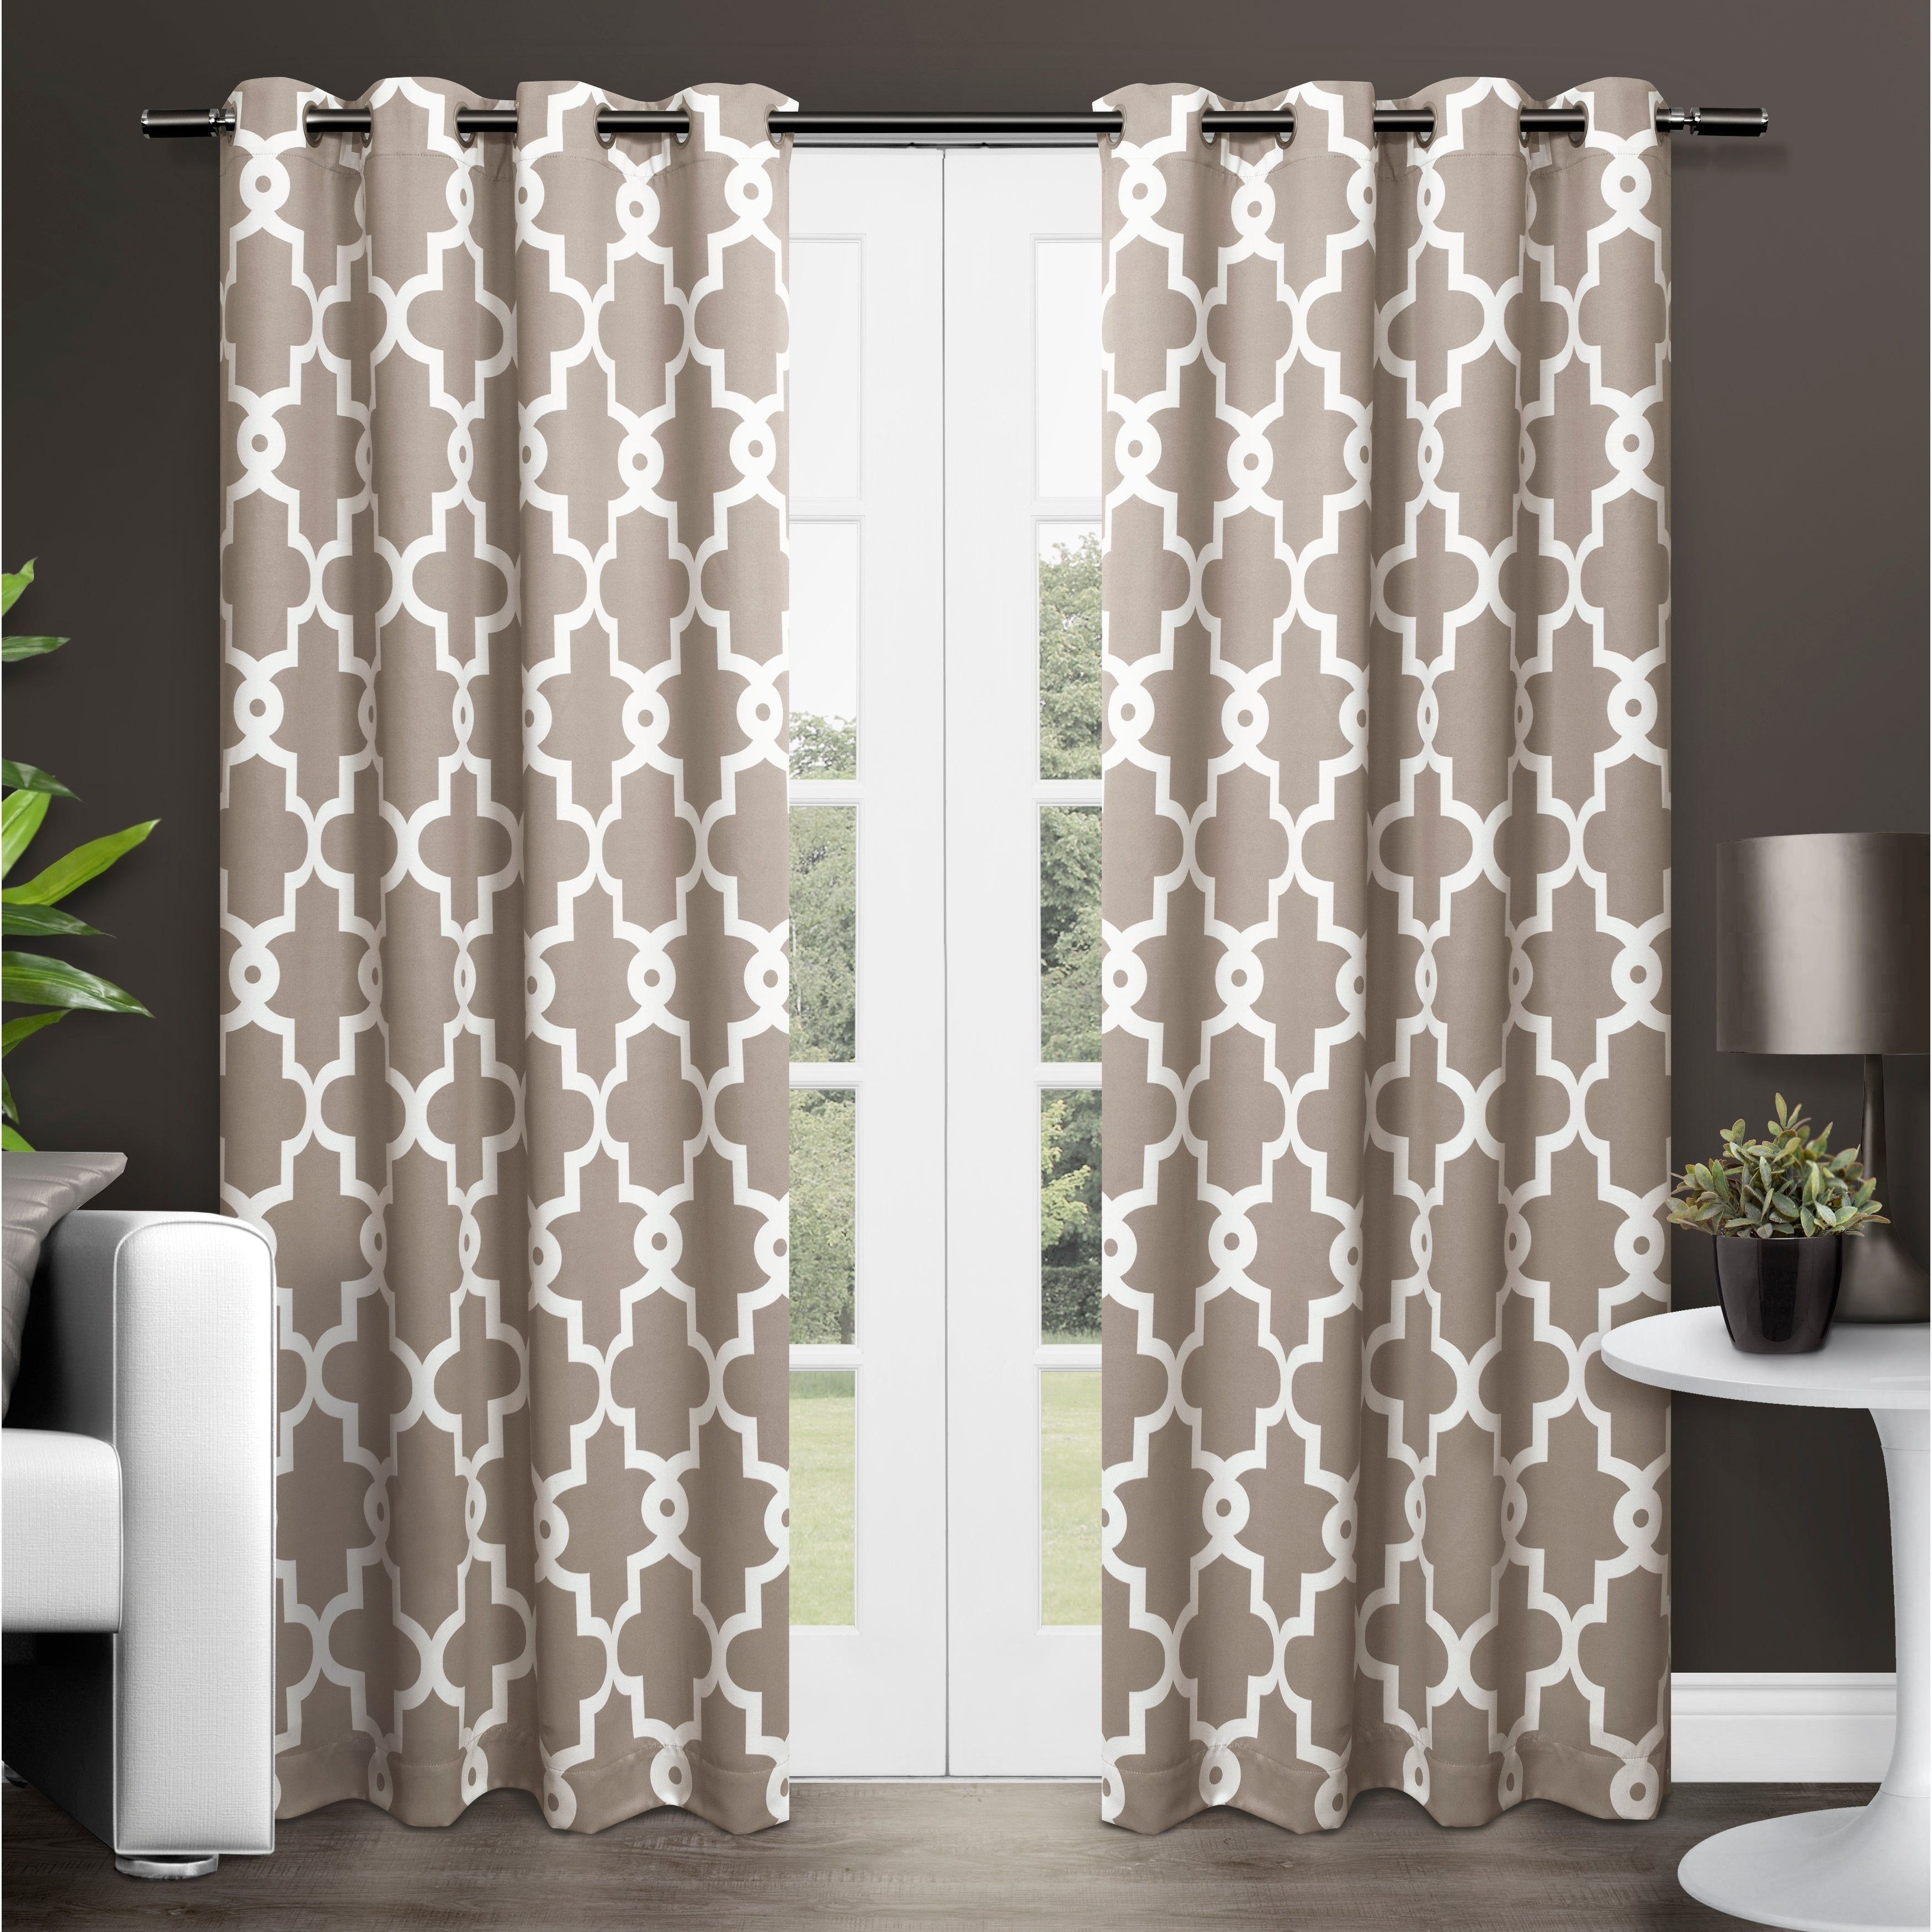 The Curated Nomad Duane Blackout Curtain Panel Pair With The Curated Nomad Duane Jacquard Grommet Top Curtain Panel Pairs (View 22 of 30)